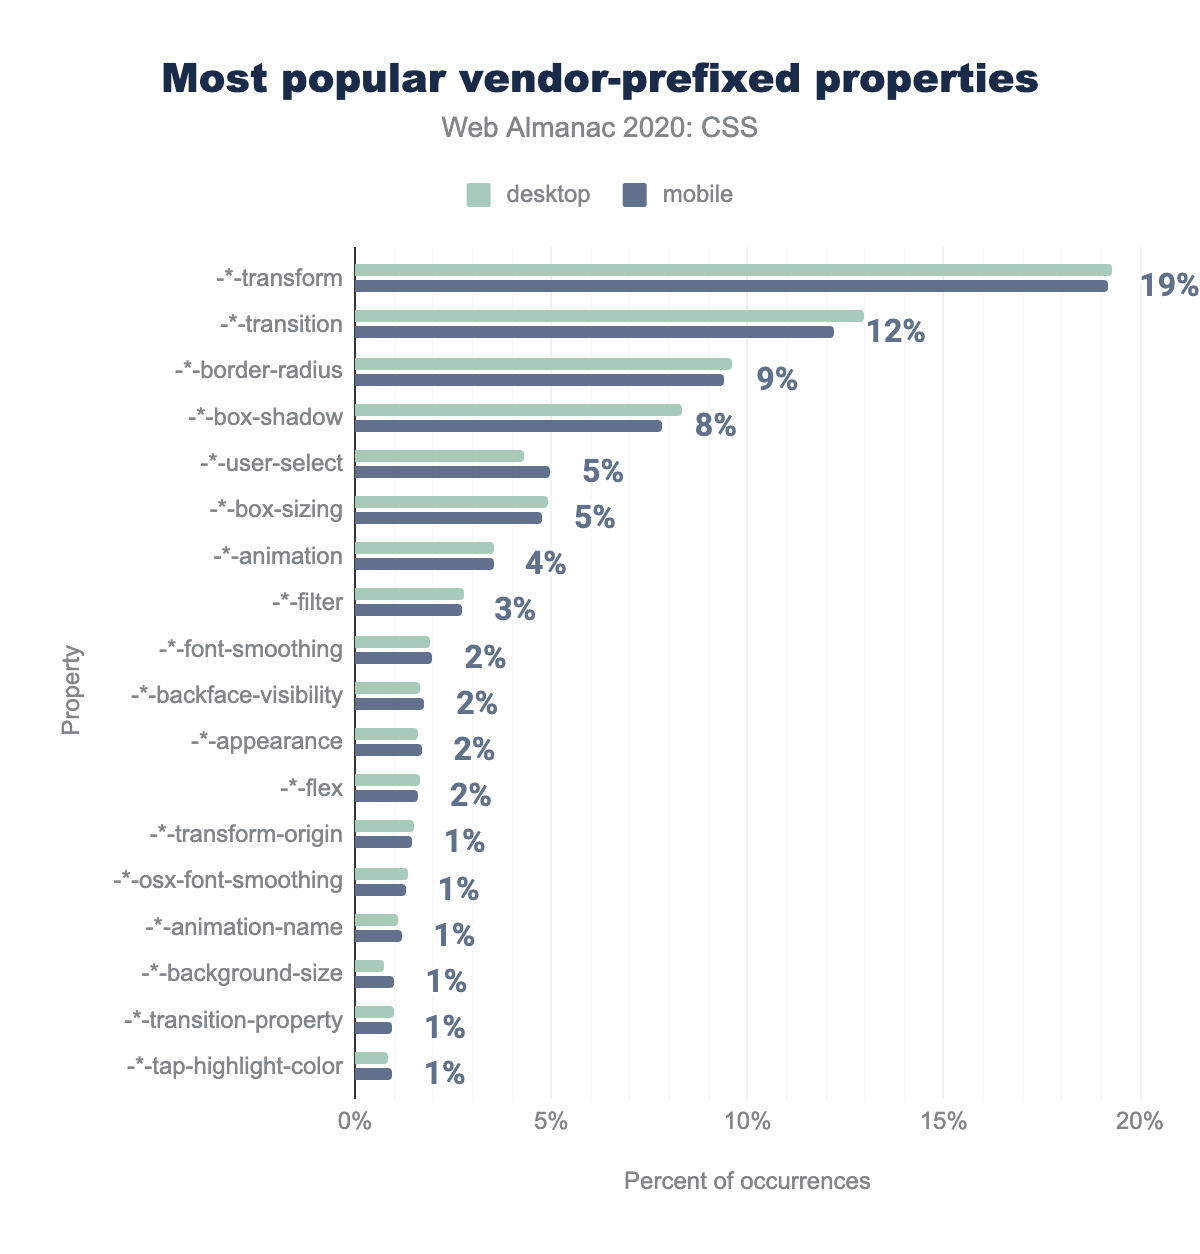 Relative popularity of properties that are most used with vendor prefixes, as a percent of occurrences.